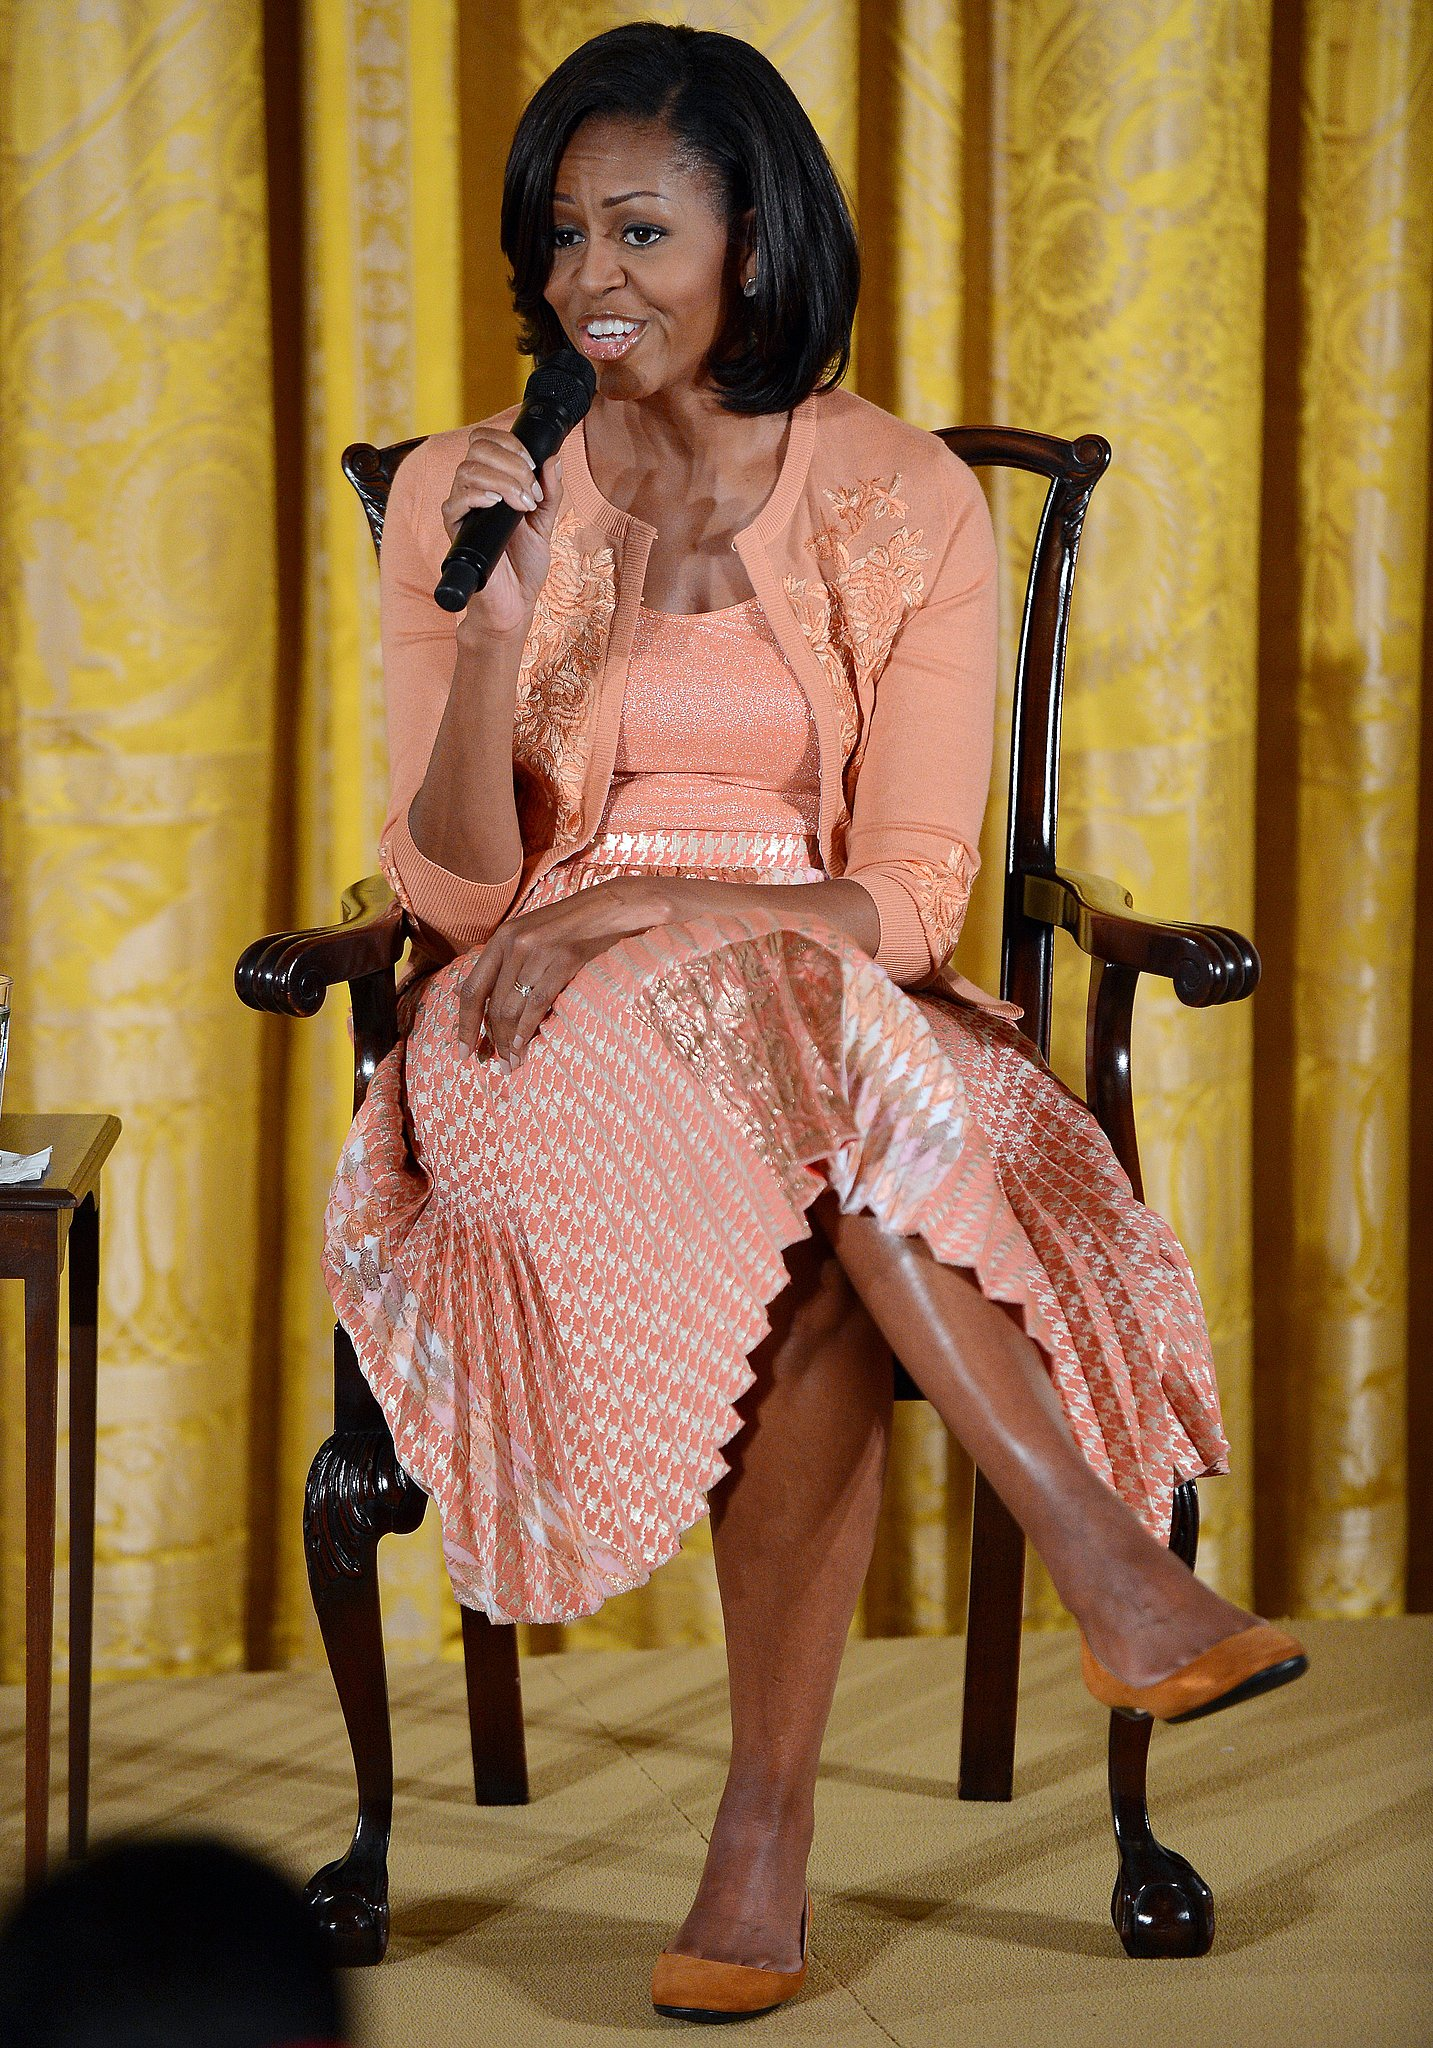 The style icon michelle obama fashionandstylepolice fashionandstylepolice Japanese fashion style icon